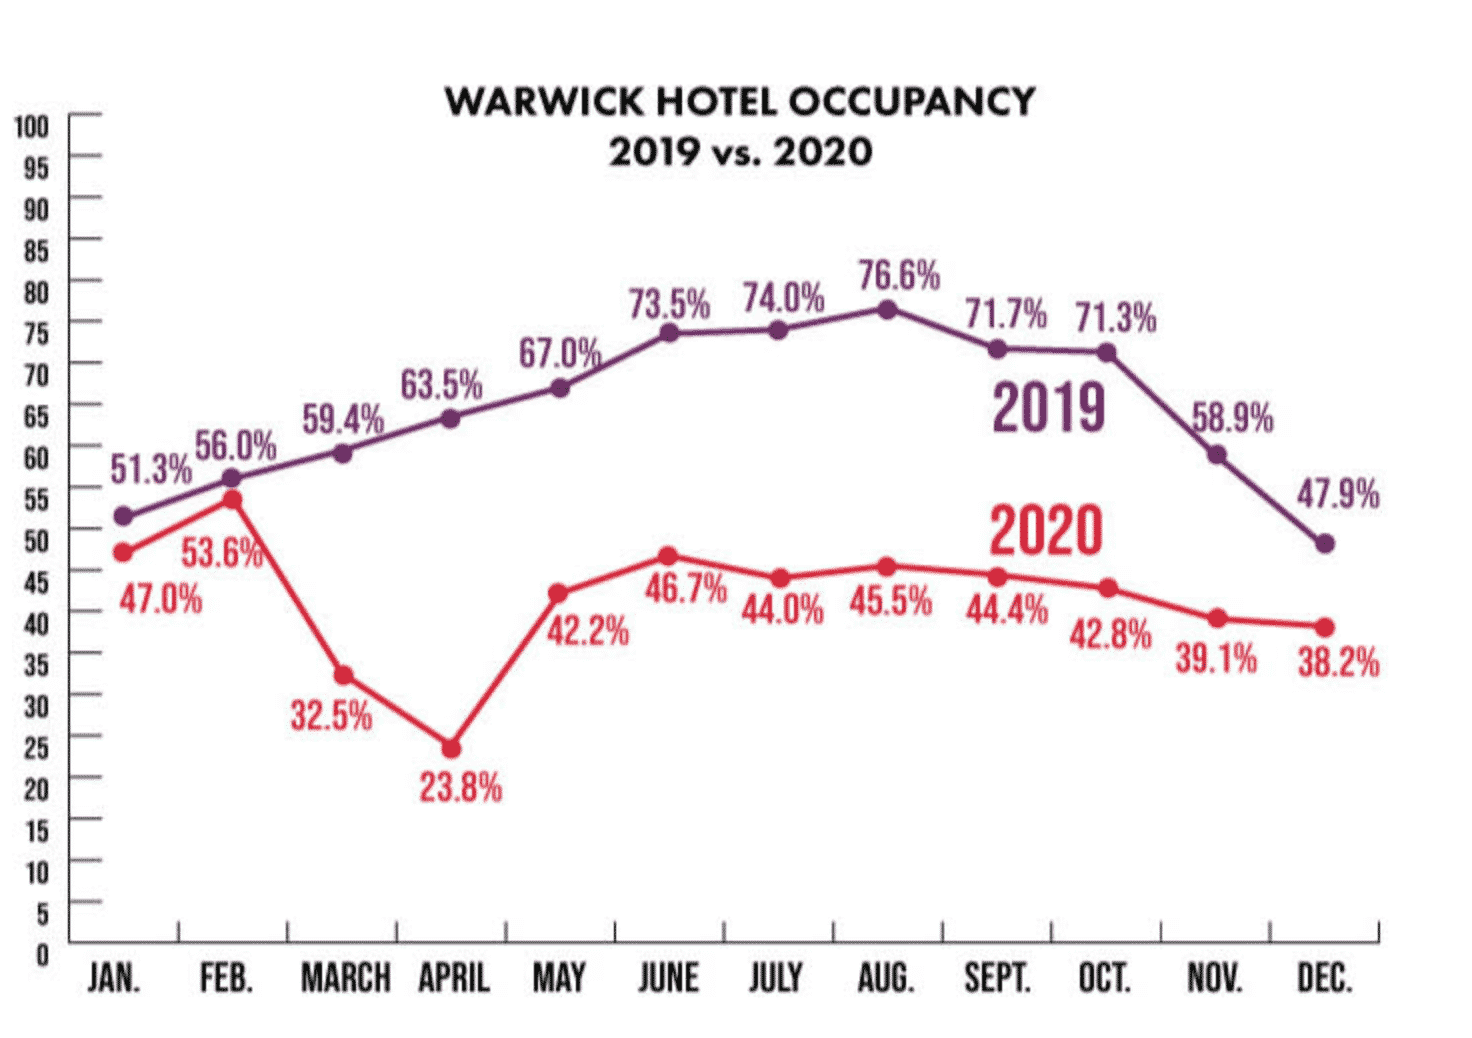 [CREDIT: PWCVB] The 'Meet in RI' campaign asks local companies to host future meetings, events, & conventions in the Ocean State from 2022 to 2024. Above, the PWCVB charts the effect of the pandemic on Warwick's hospitality industry.